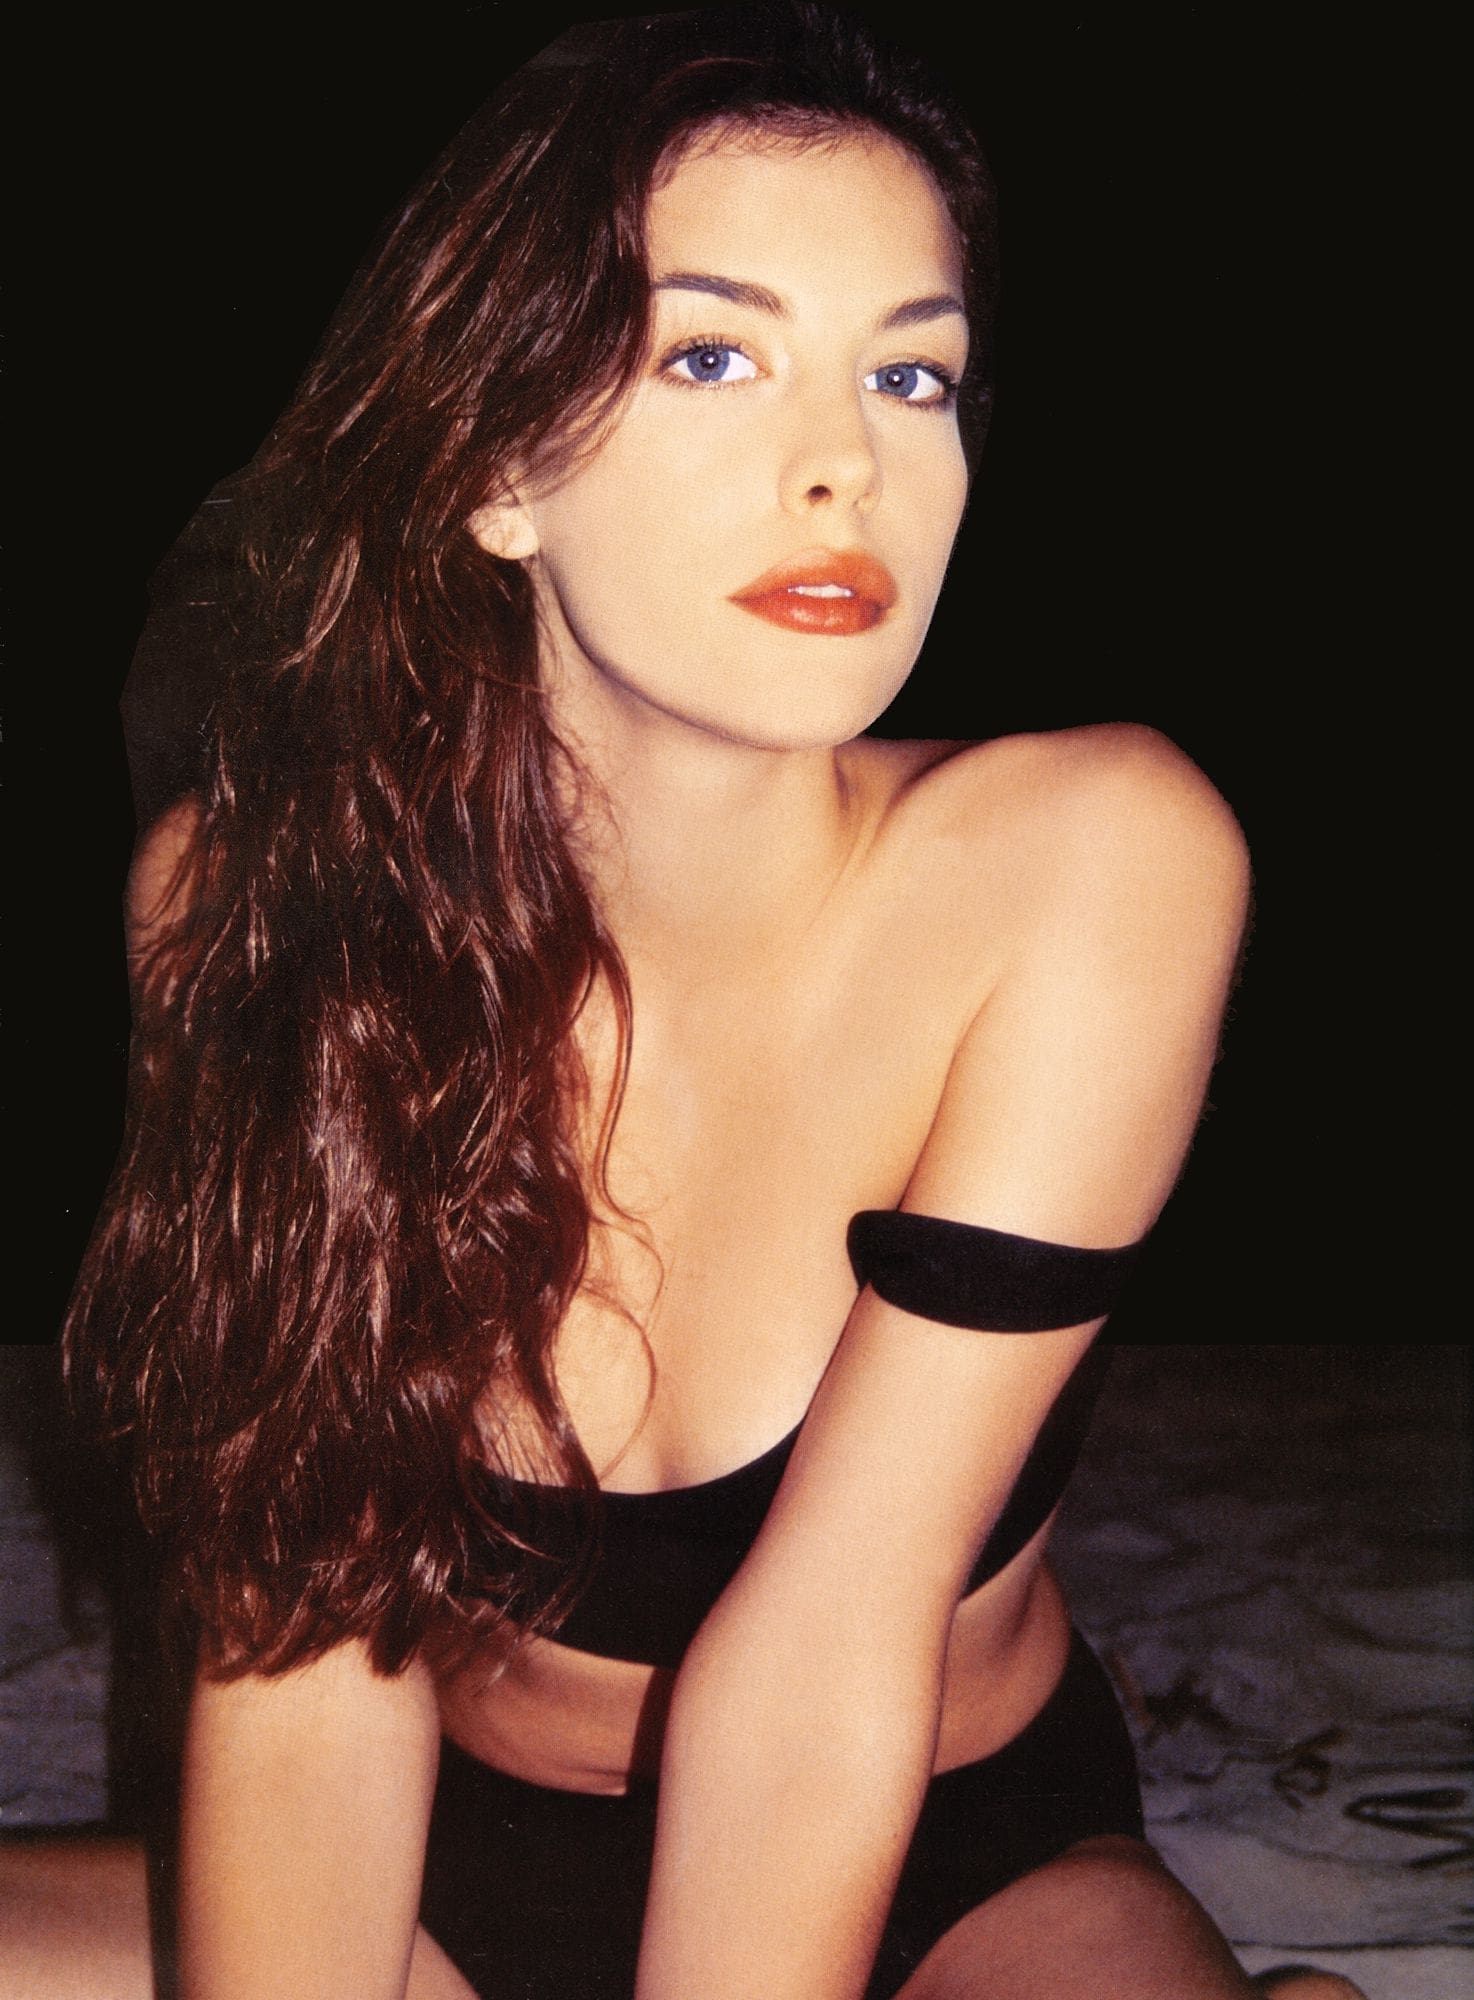 49 Hot And Sexy Pictures Of Liv Tyler Will Get You All -7995